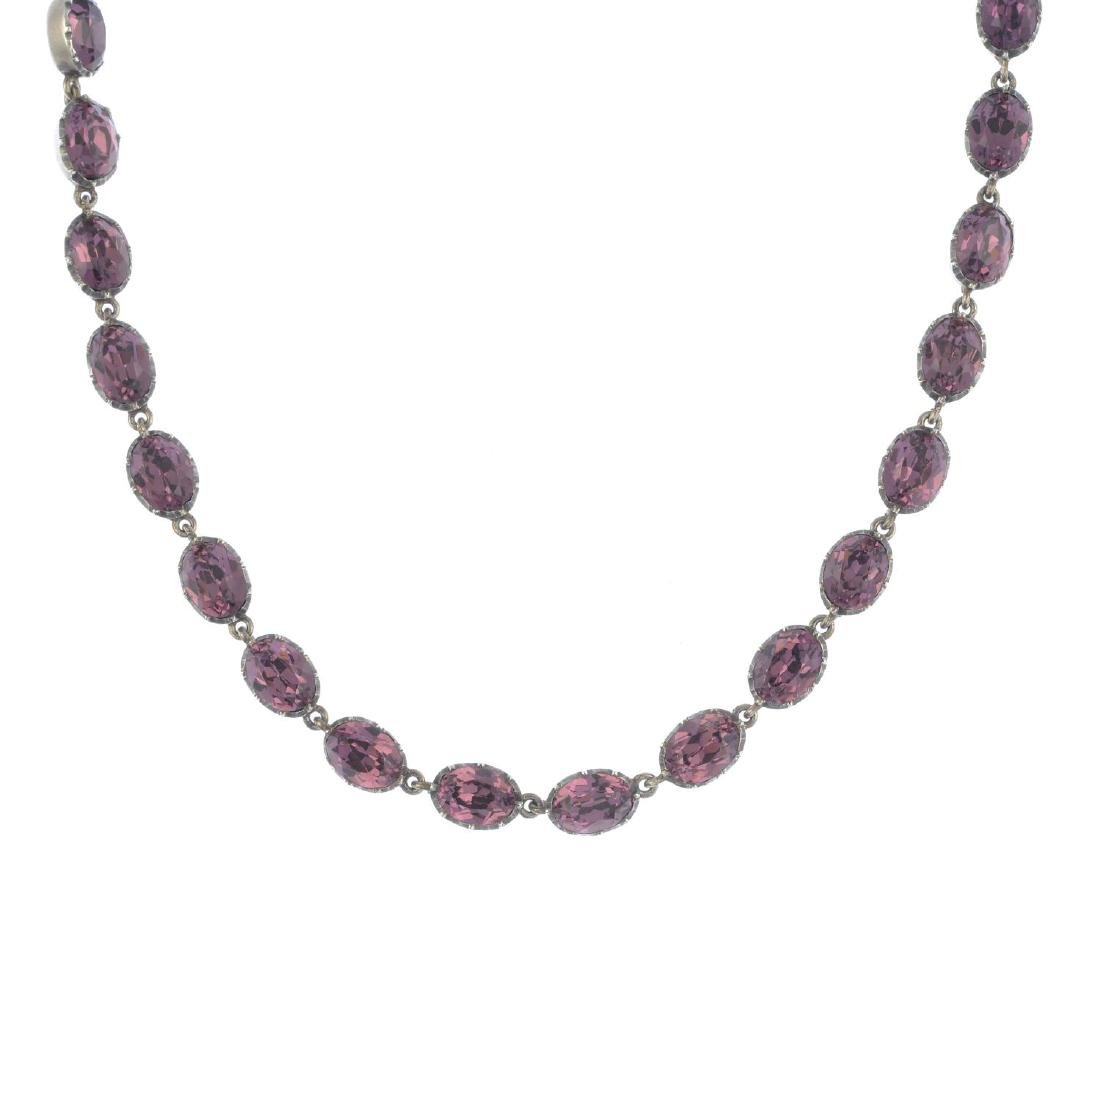 An amethyst necklace. Designed as a series of